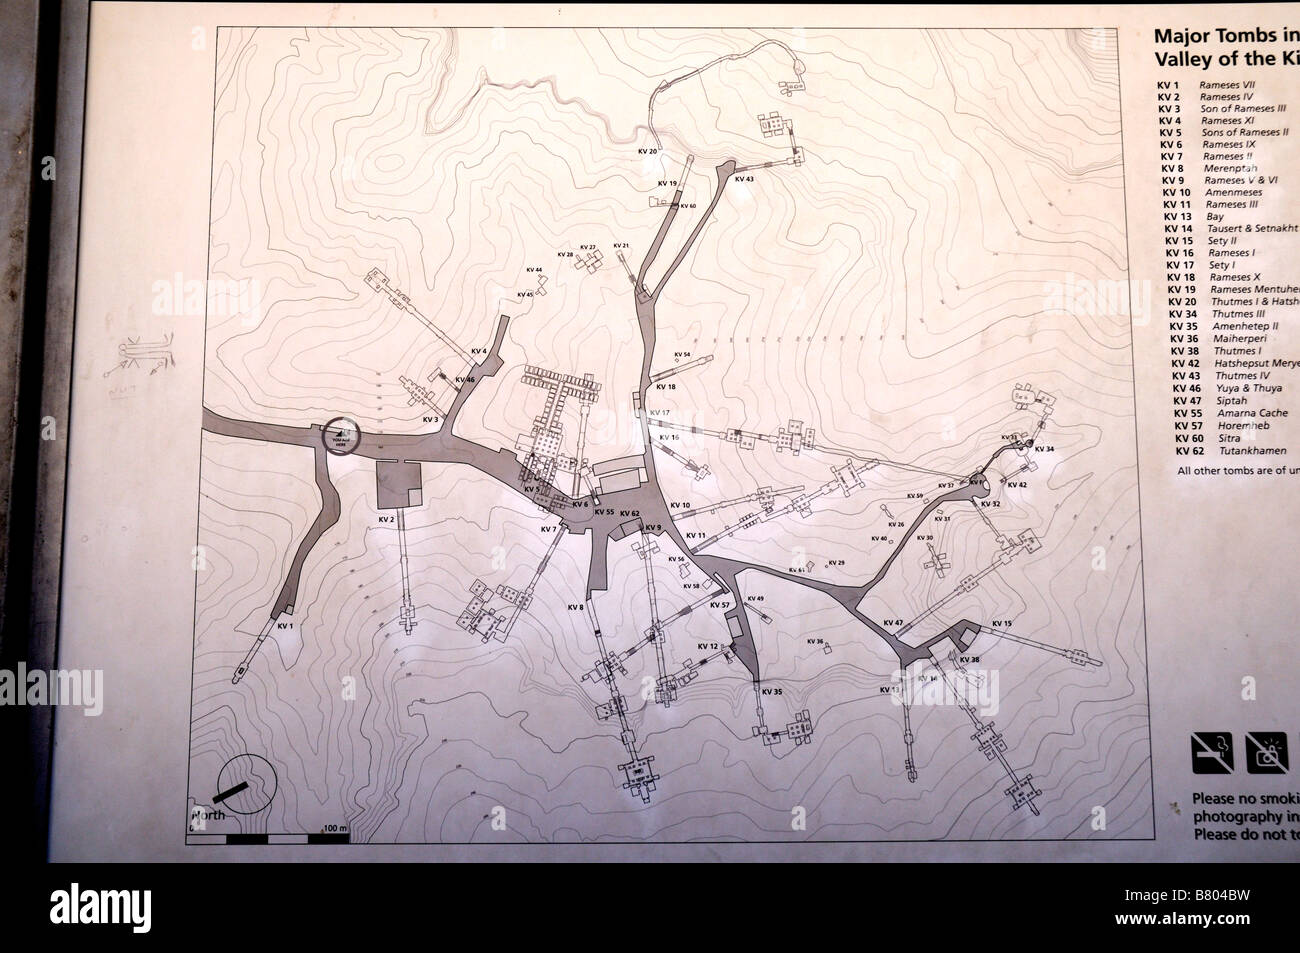 Map Showing Tombs In The Valley Of The Kings At Luxor In Egypt - Map of egypt showing valley of the kings